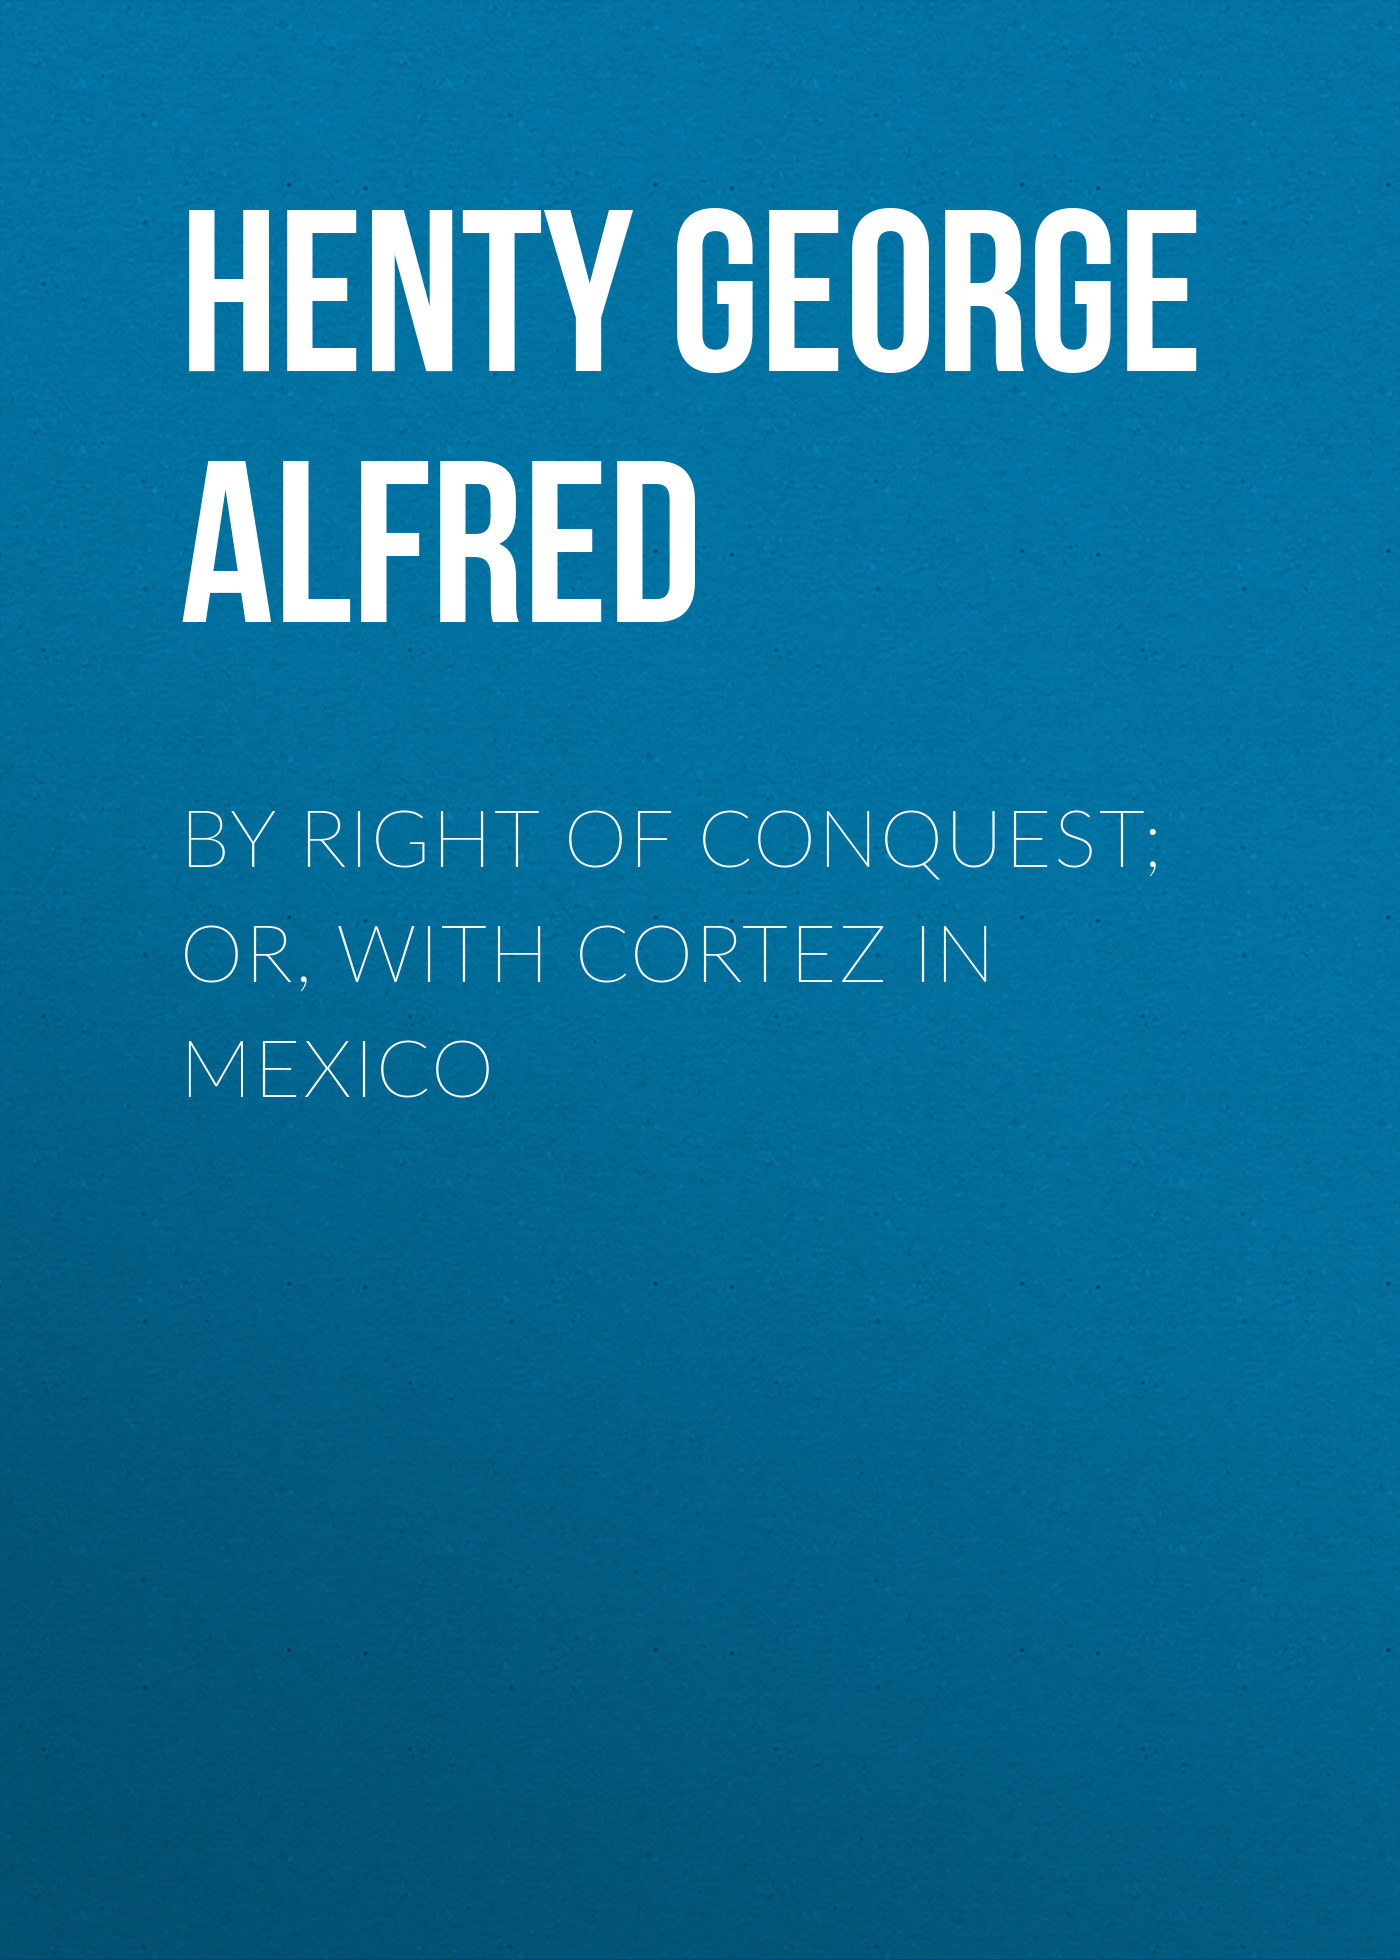 Henty George Alfred By Right of Conquest; Or, With Cortez in Mexico james madison cutts the conquest of california and new mexico